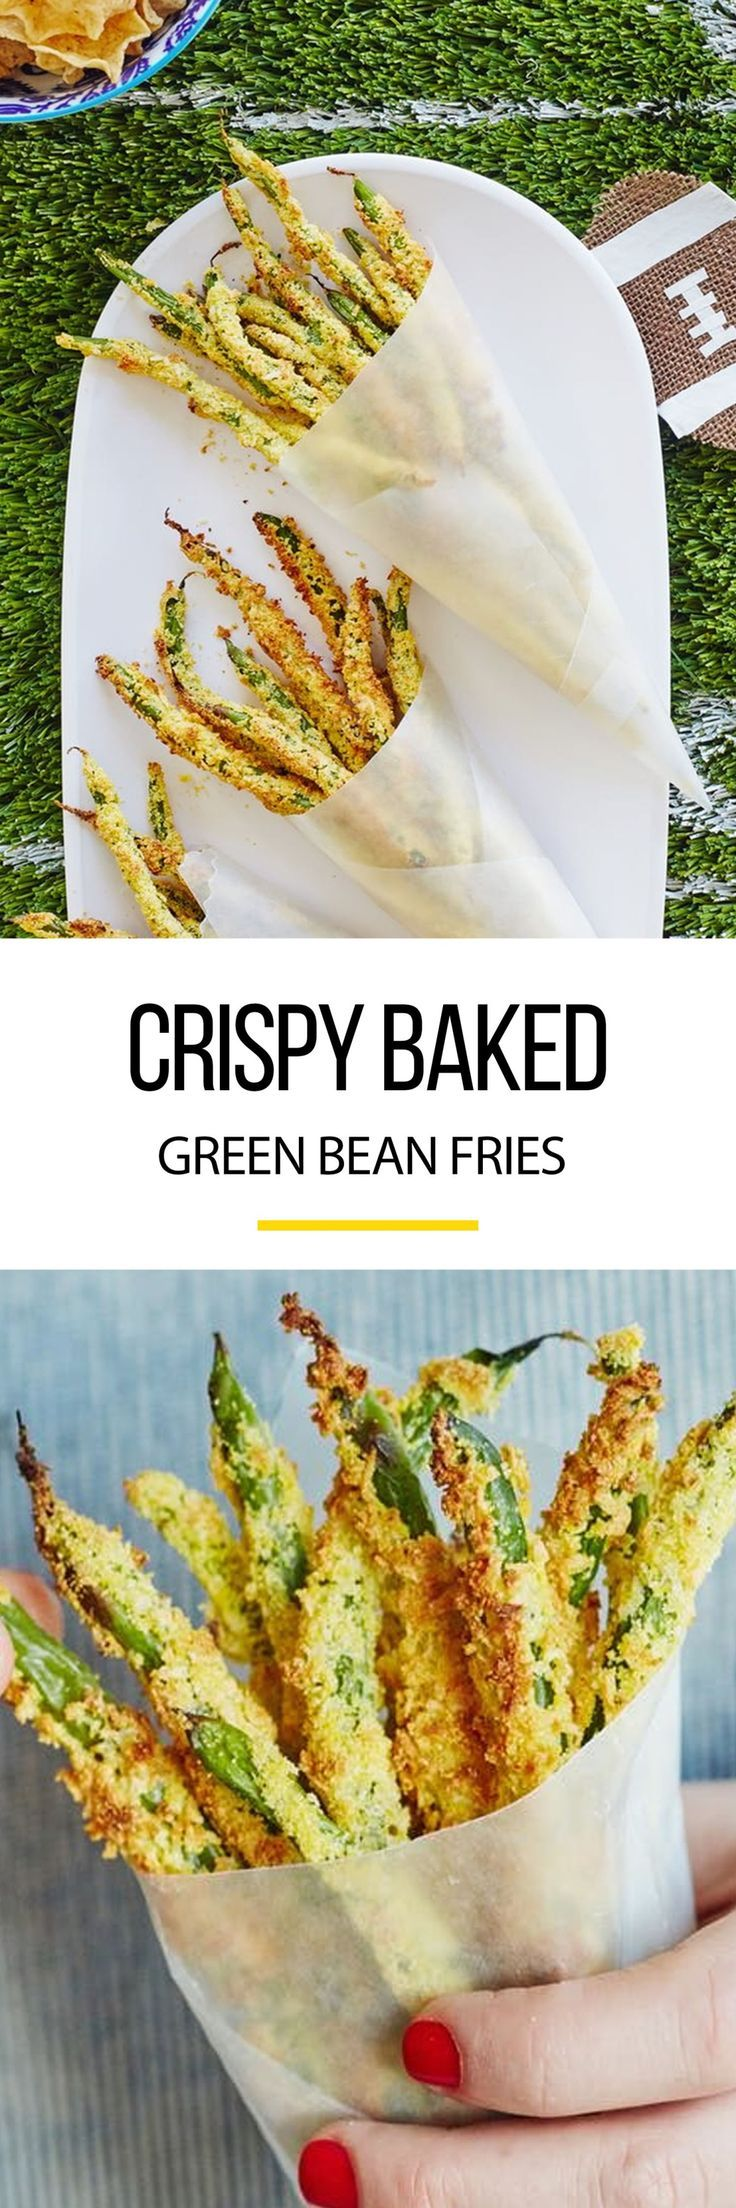 Healthy Oven-Baked Green Bean Fries Recipe. This healthy alternative to potatoes makes a delicious easy, low-carb vegetarian side dish for dinner. Use fresh beans for crispy crunchy fries! Side dishes have never been so good! Also make perfect appetizers or snacks for party food. Try them ASAP!